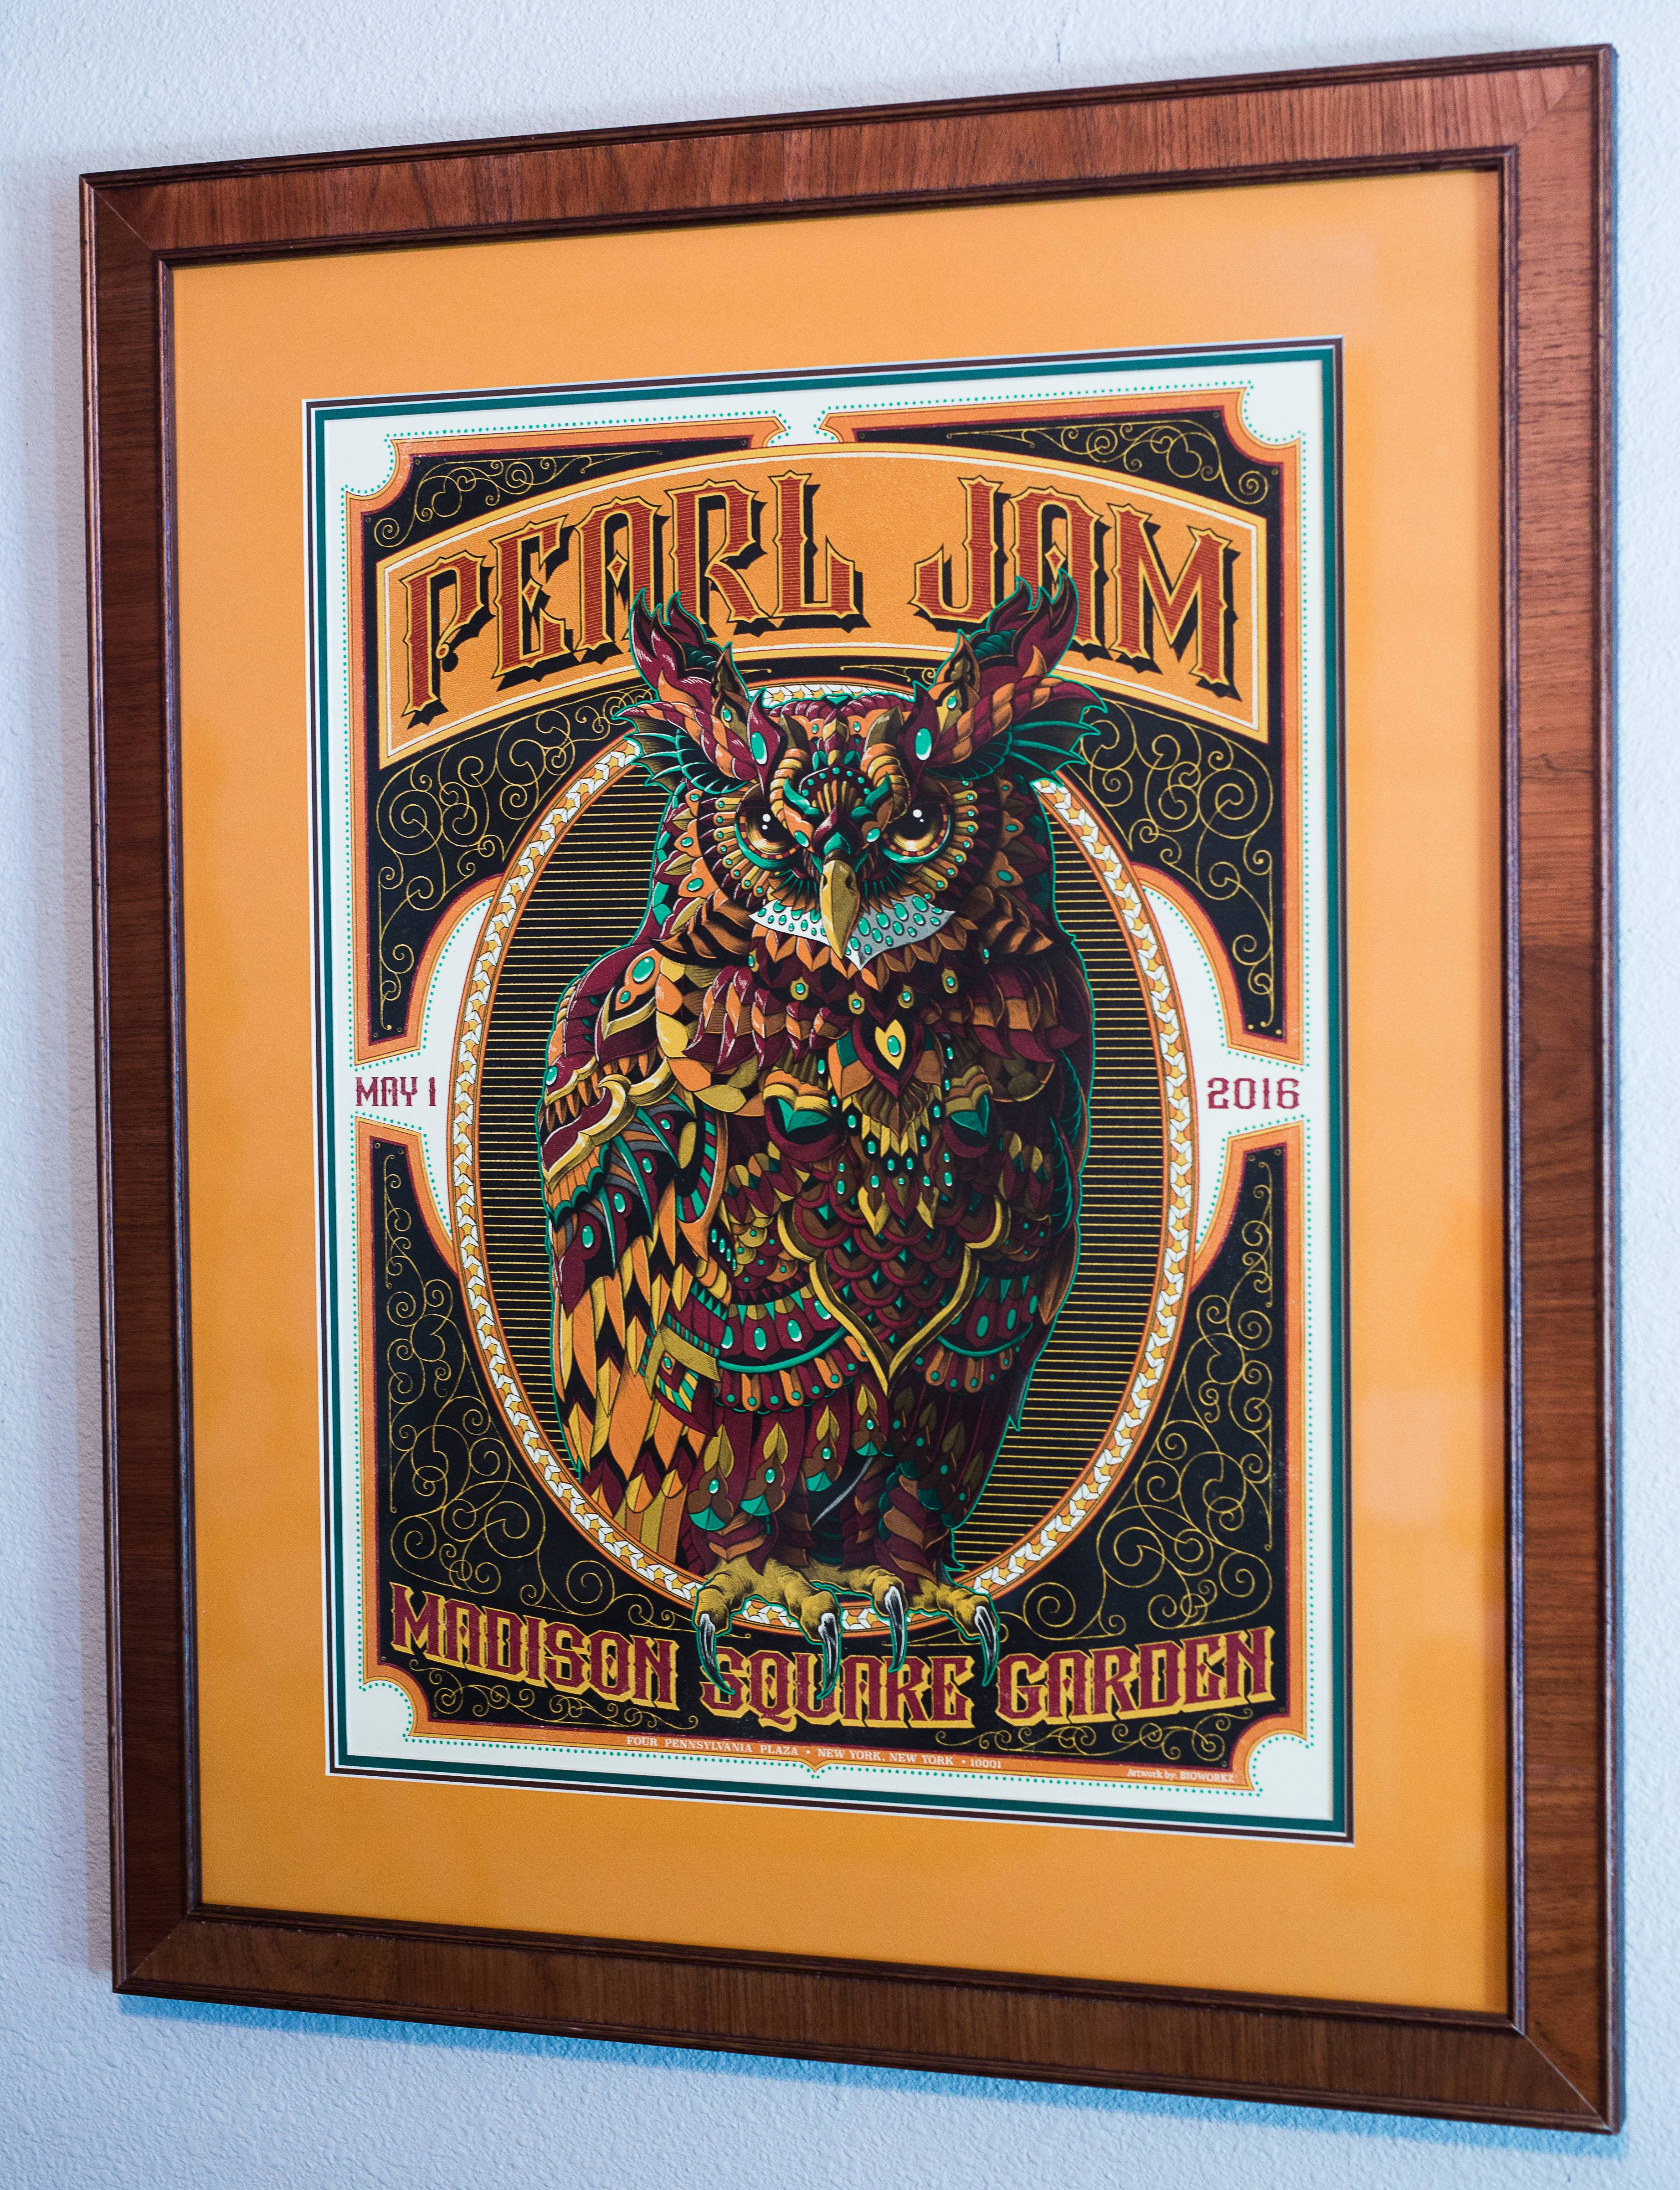 Framed Poster Thread Page 277 Pearl Jam Community